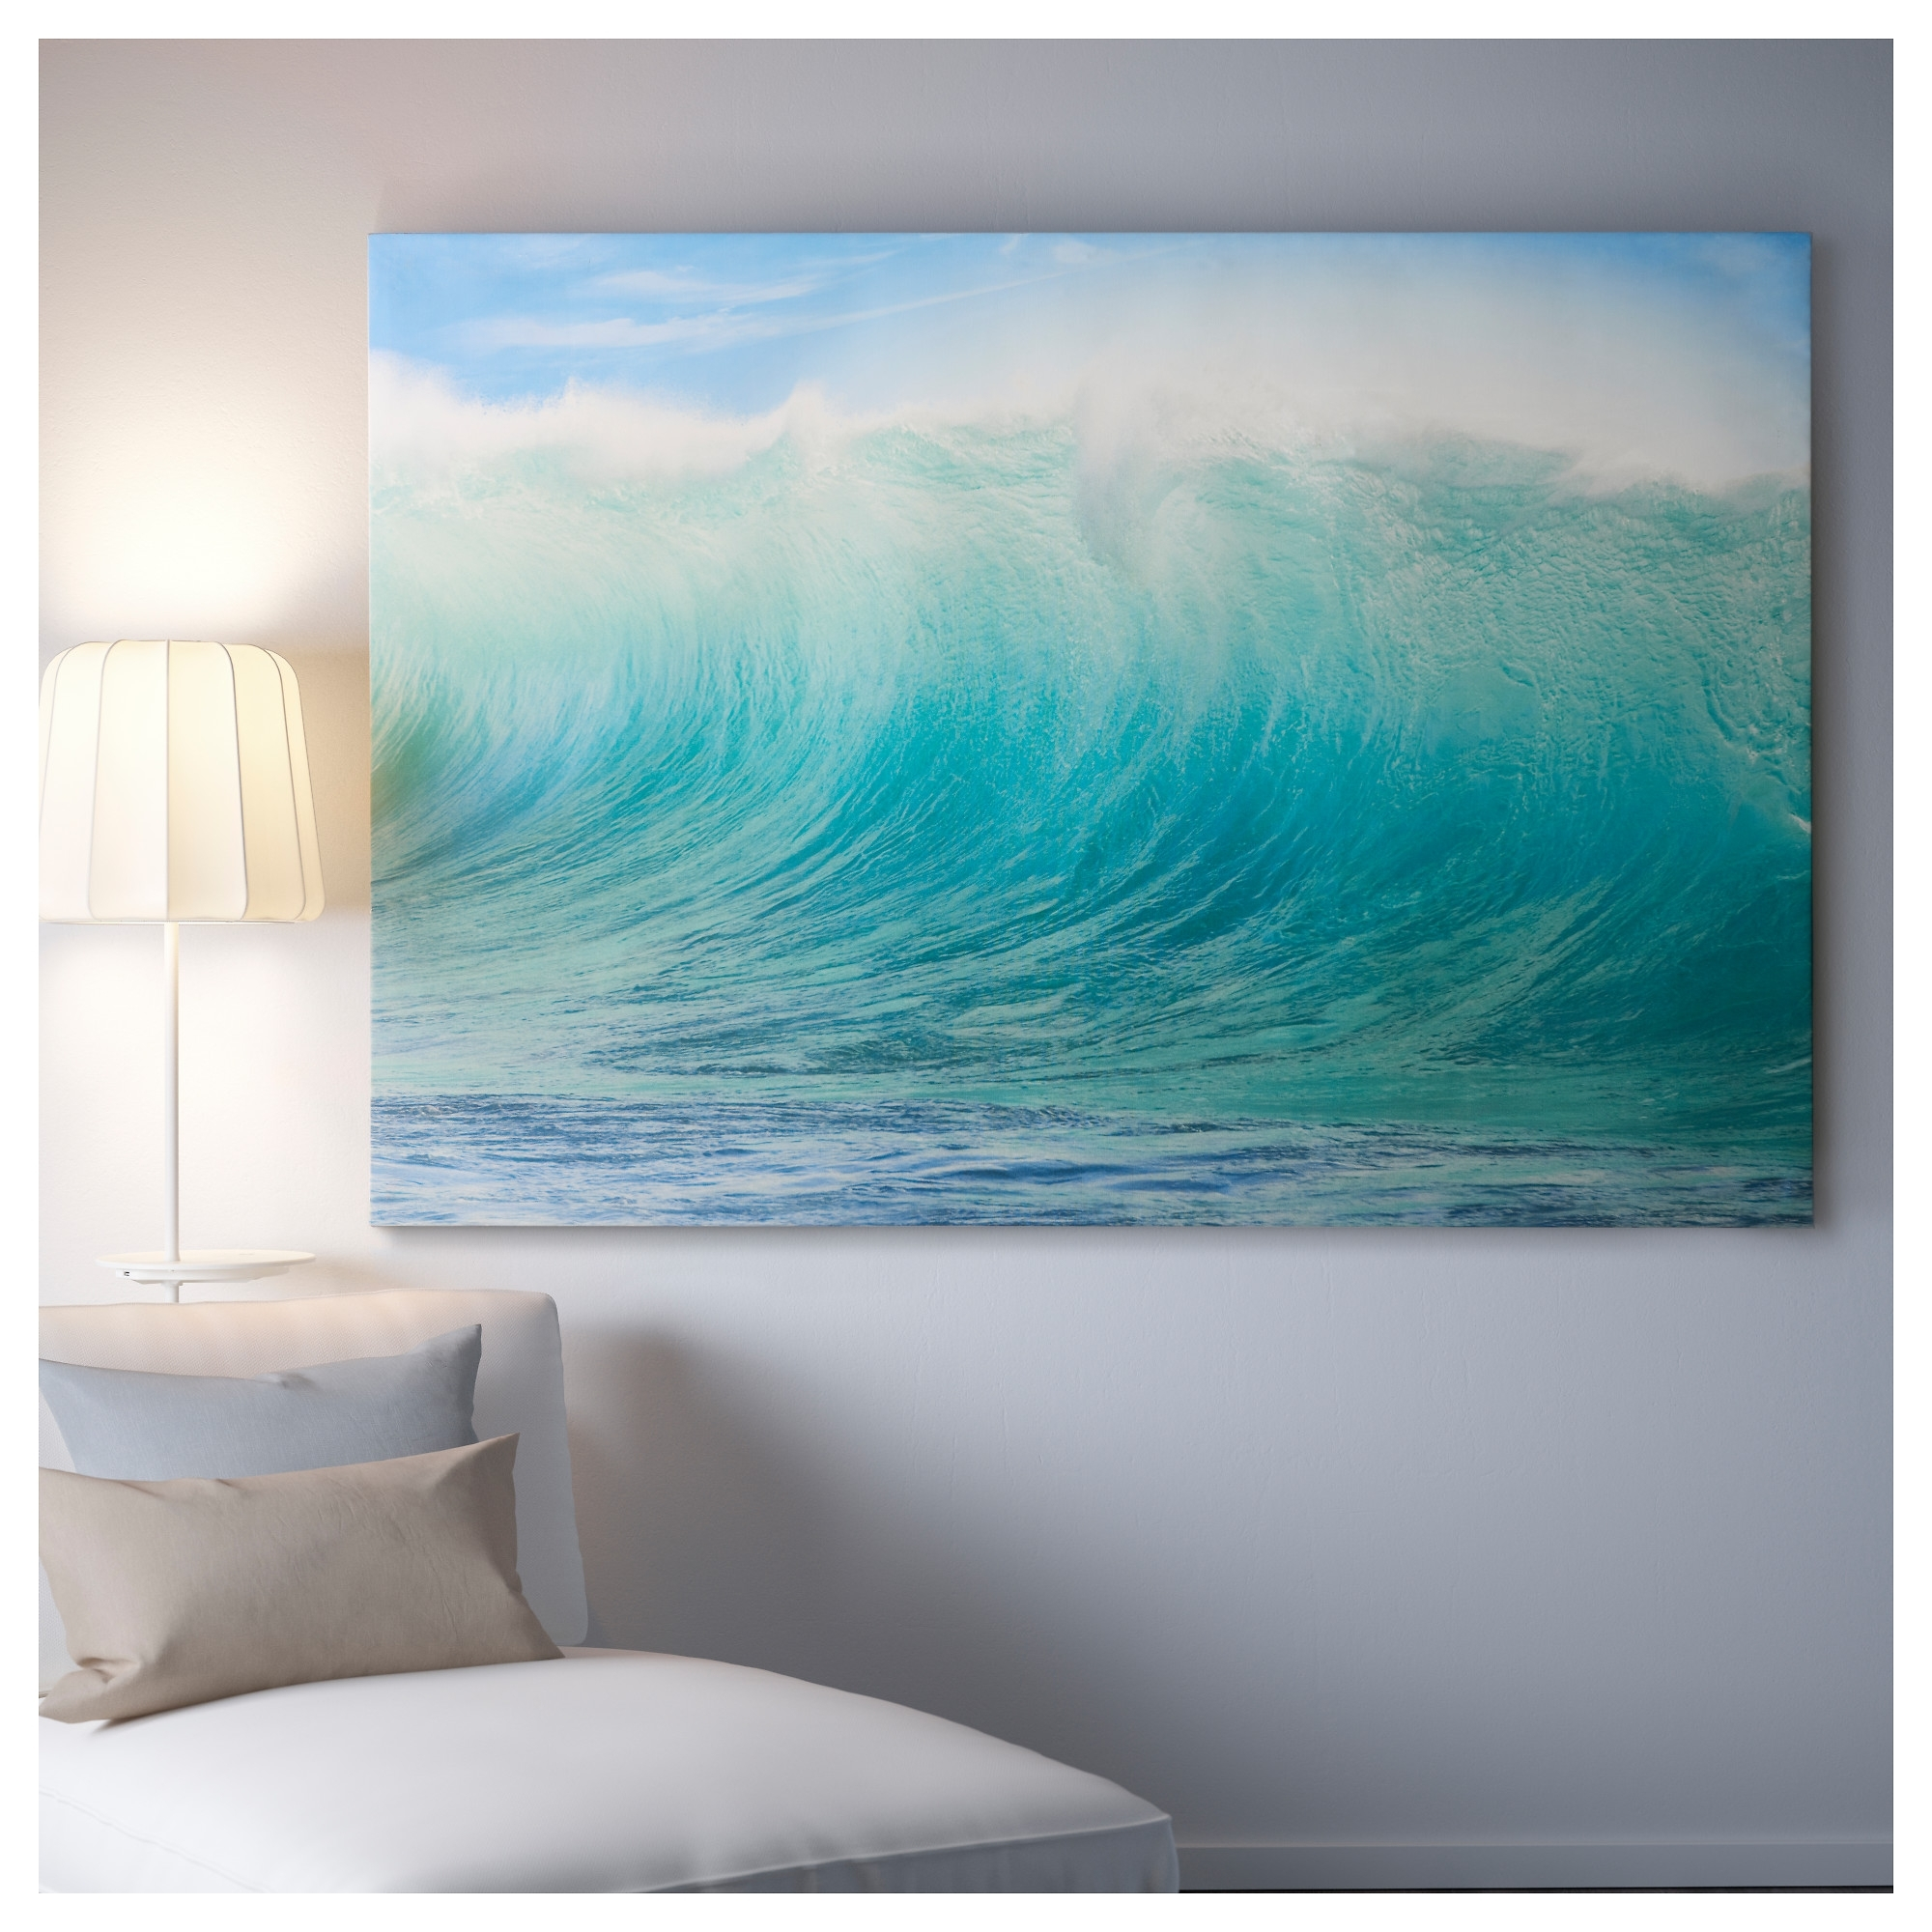 Premiär Picture – Ikea | Kash Crib | Pinterest | Sofa Bed Mattress Throughout Current Ocean Canvas Wall Art (View 10 of 15)